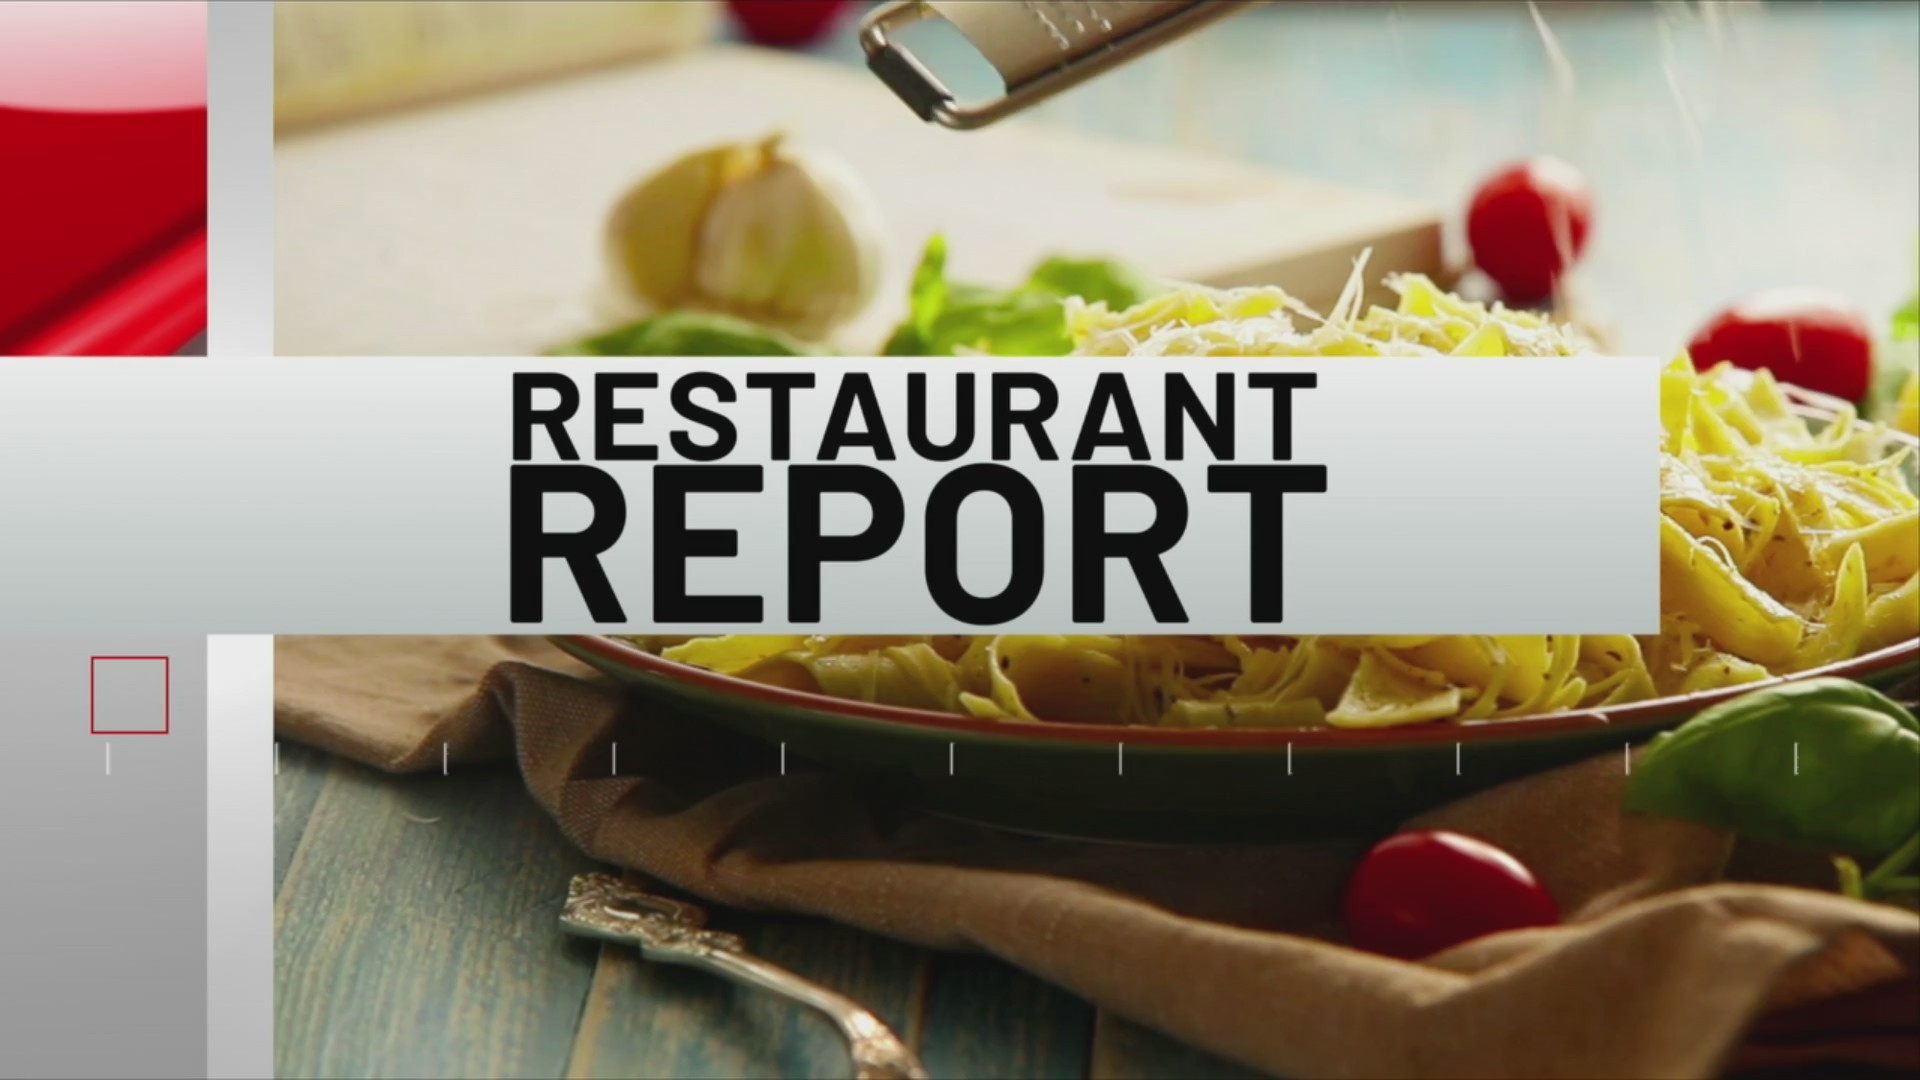 Restaurant Report: Expired milk, mouse droppings